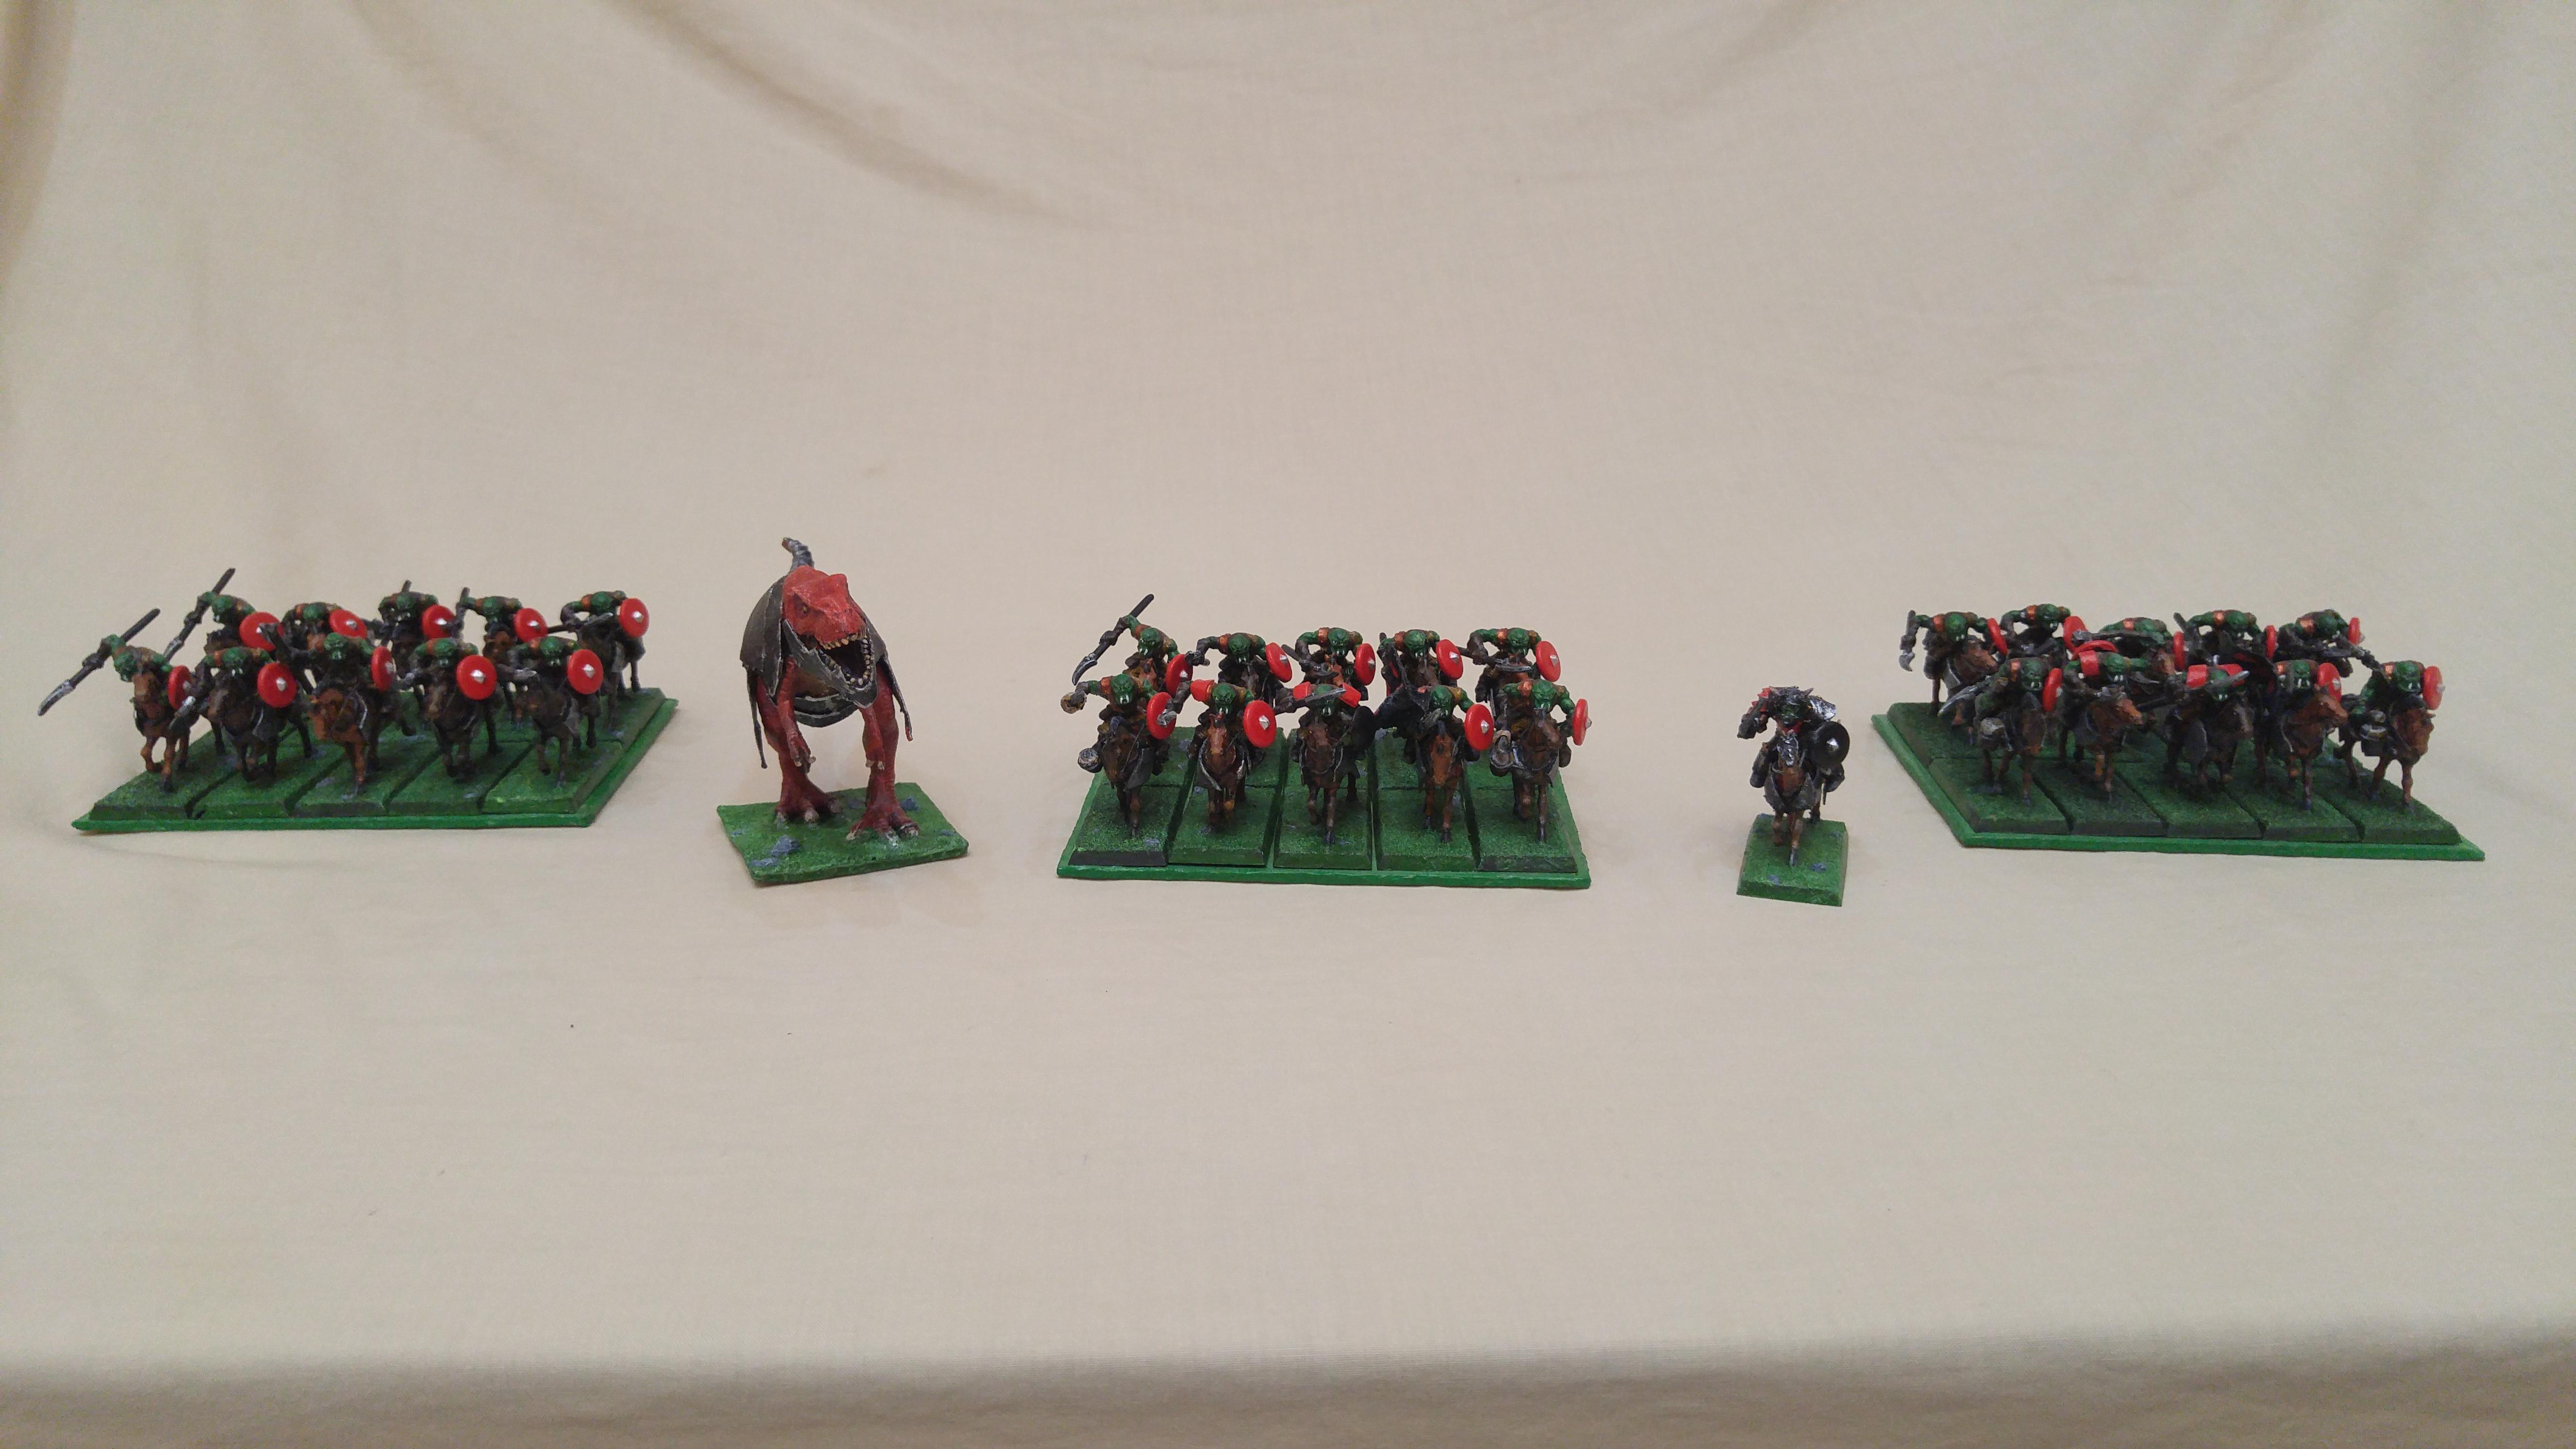 Cavalry, Cheap, Dinosaur, Em4, Kings Of War, Kow, Krudger, Orcs, Orks, Toy